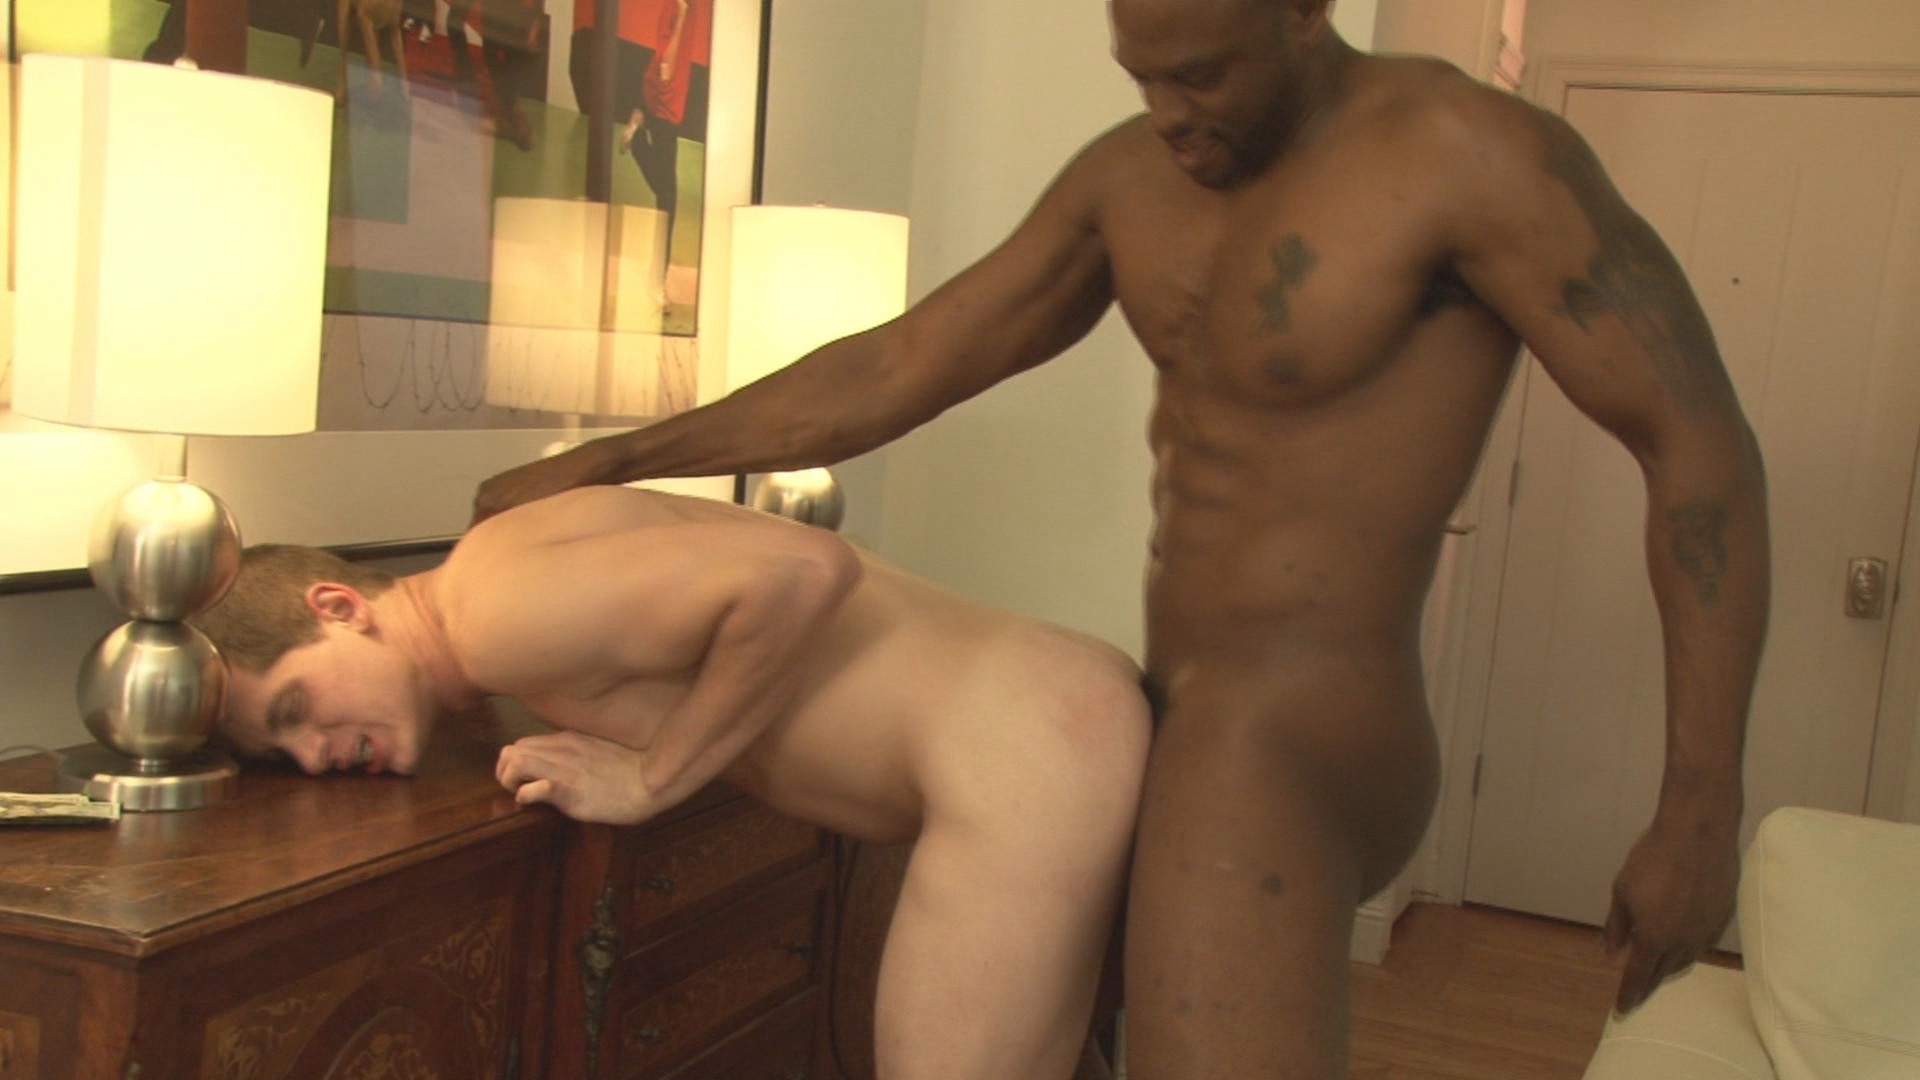 Hooker Stories 2 Xvideo gay